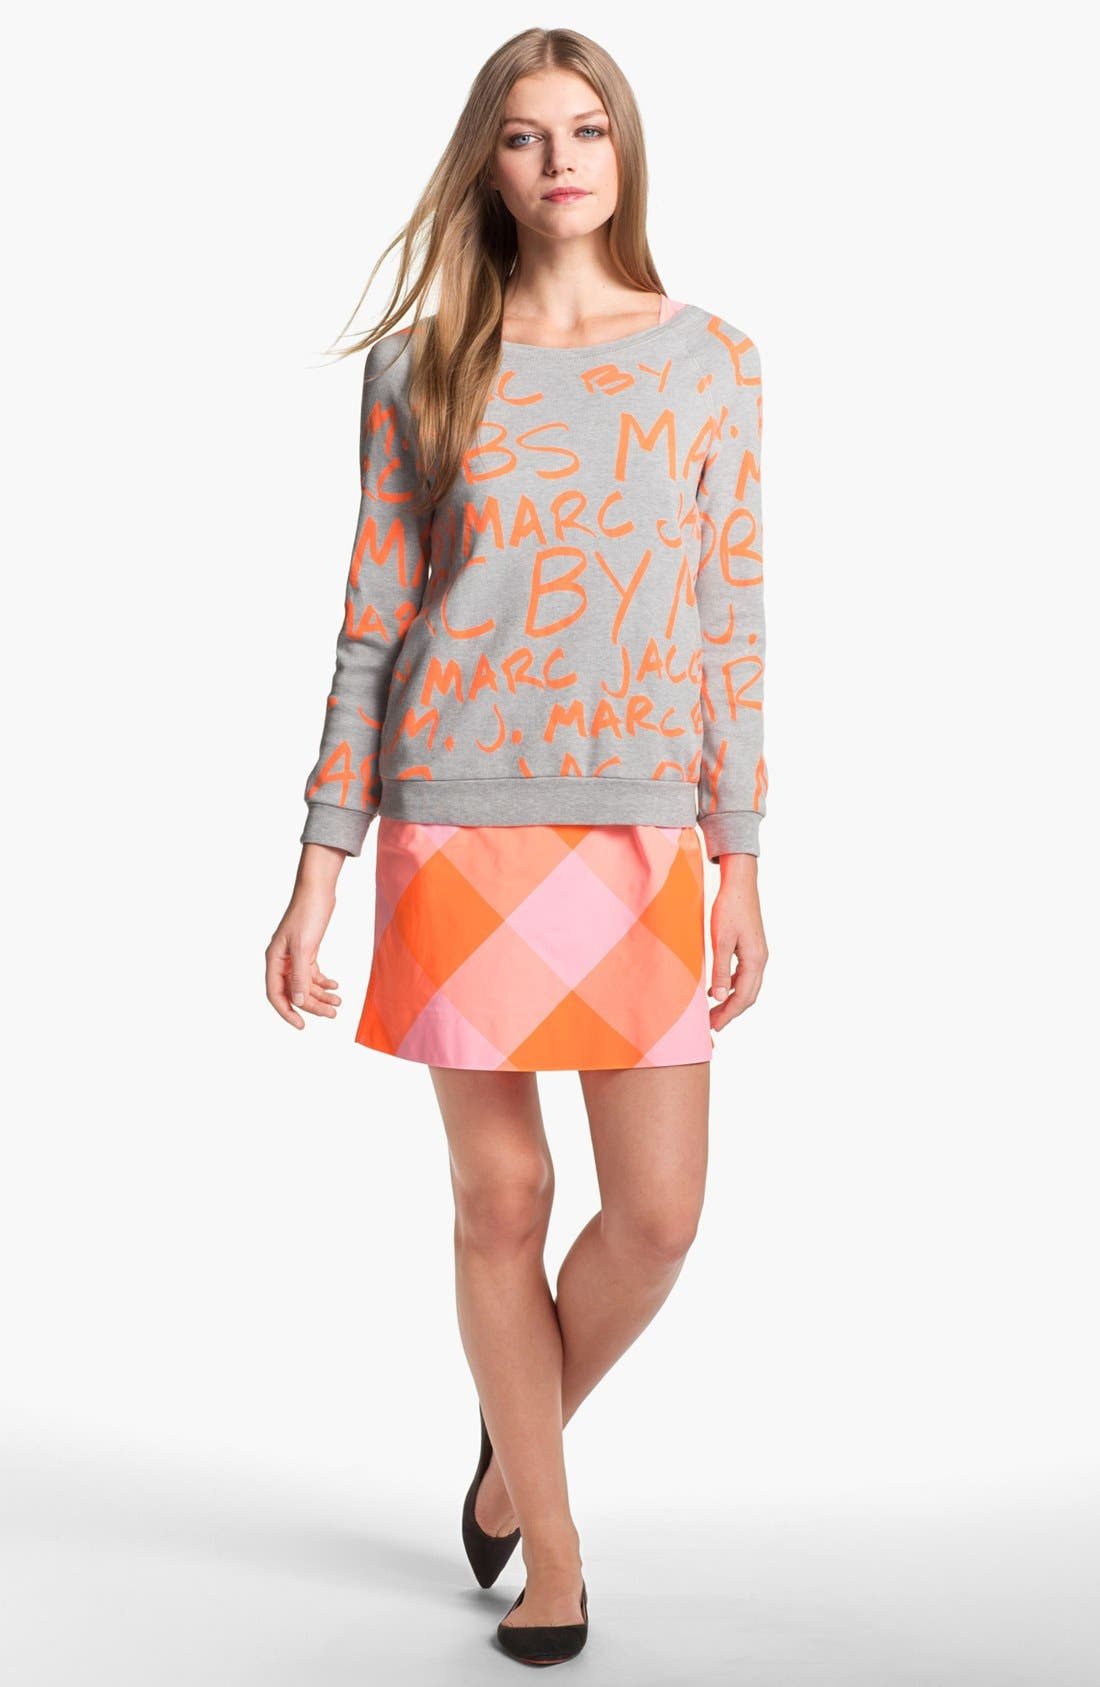 Alternate Image 1 Selected - MARC BY MARC JACOBS 'MBMJ' Sweatshirt